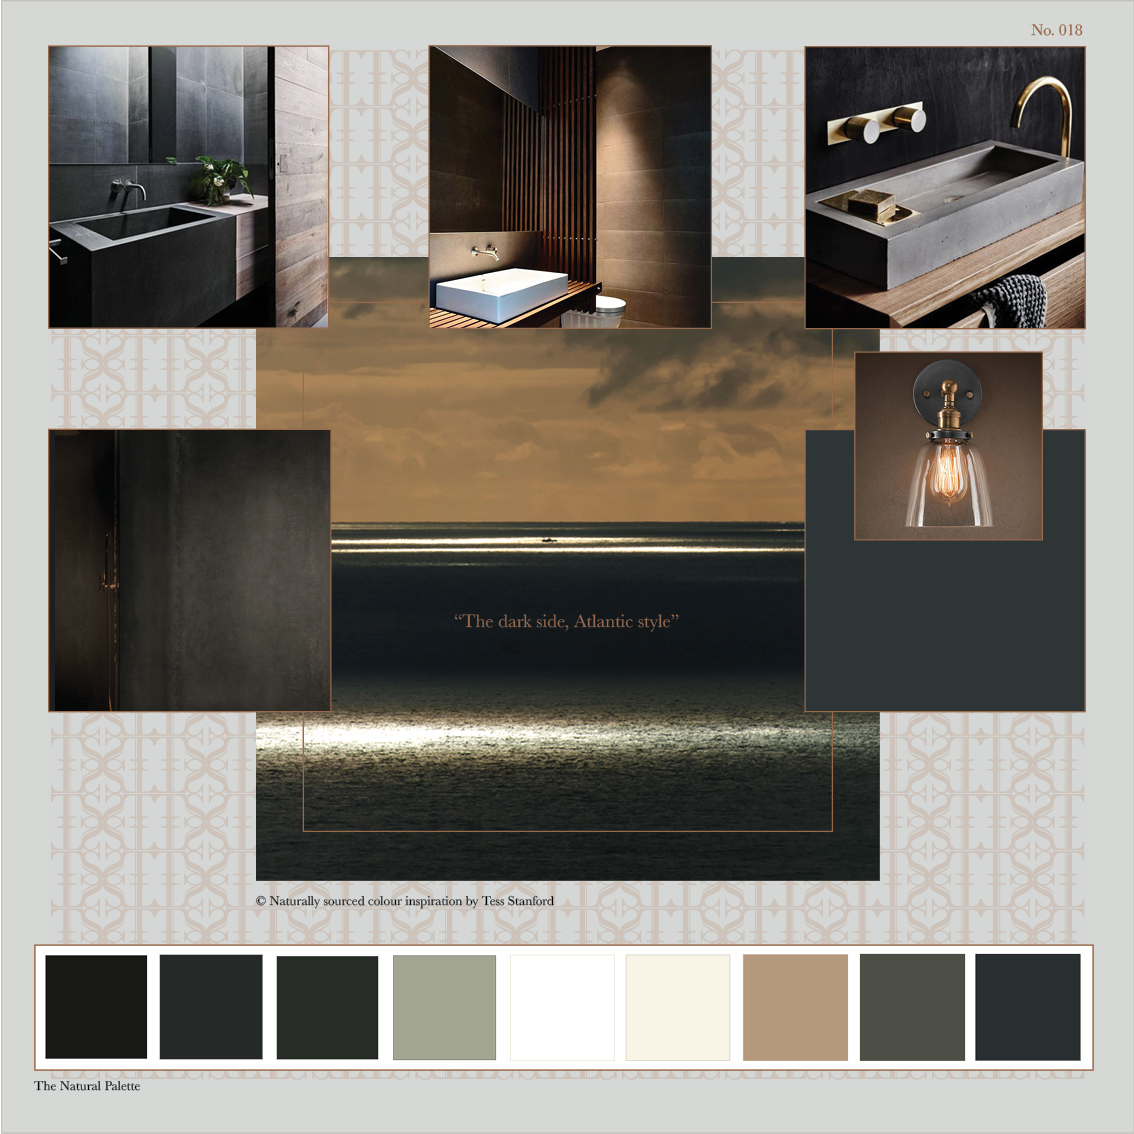 Tess Stanford Interior Design Colour Inspiration Blog No 018